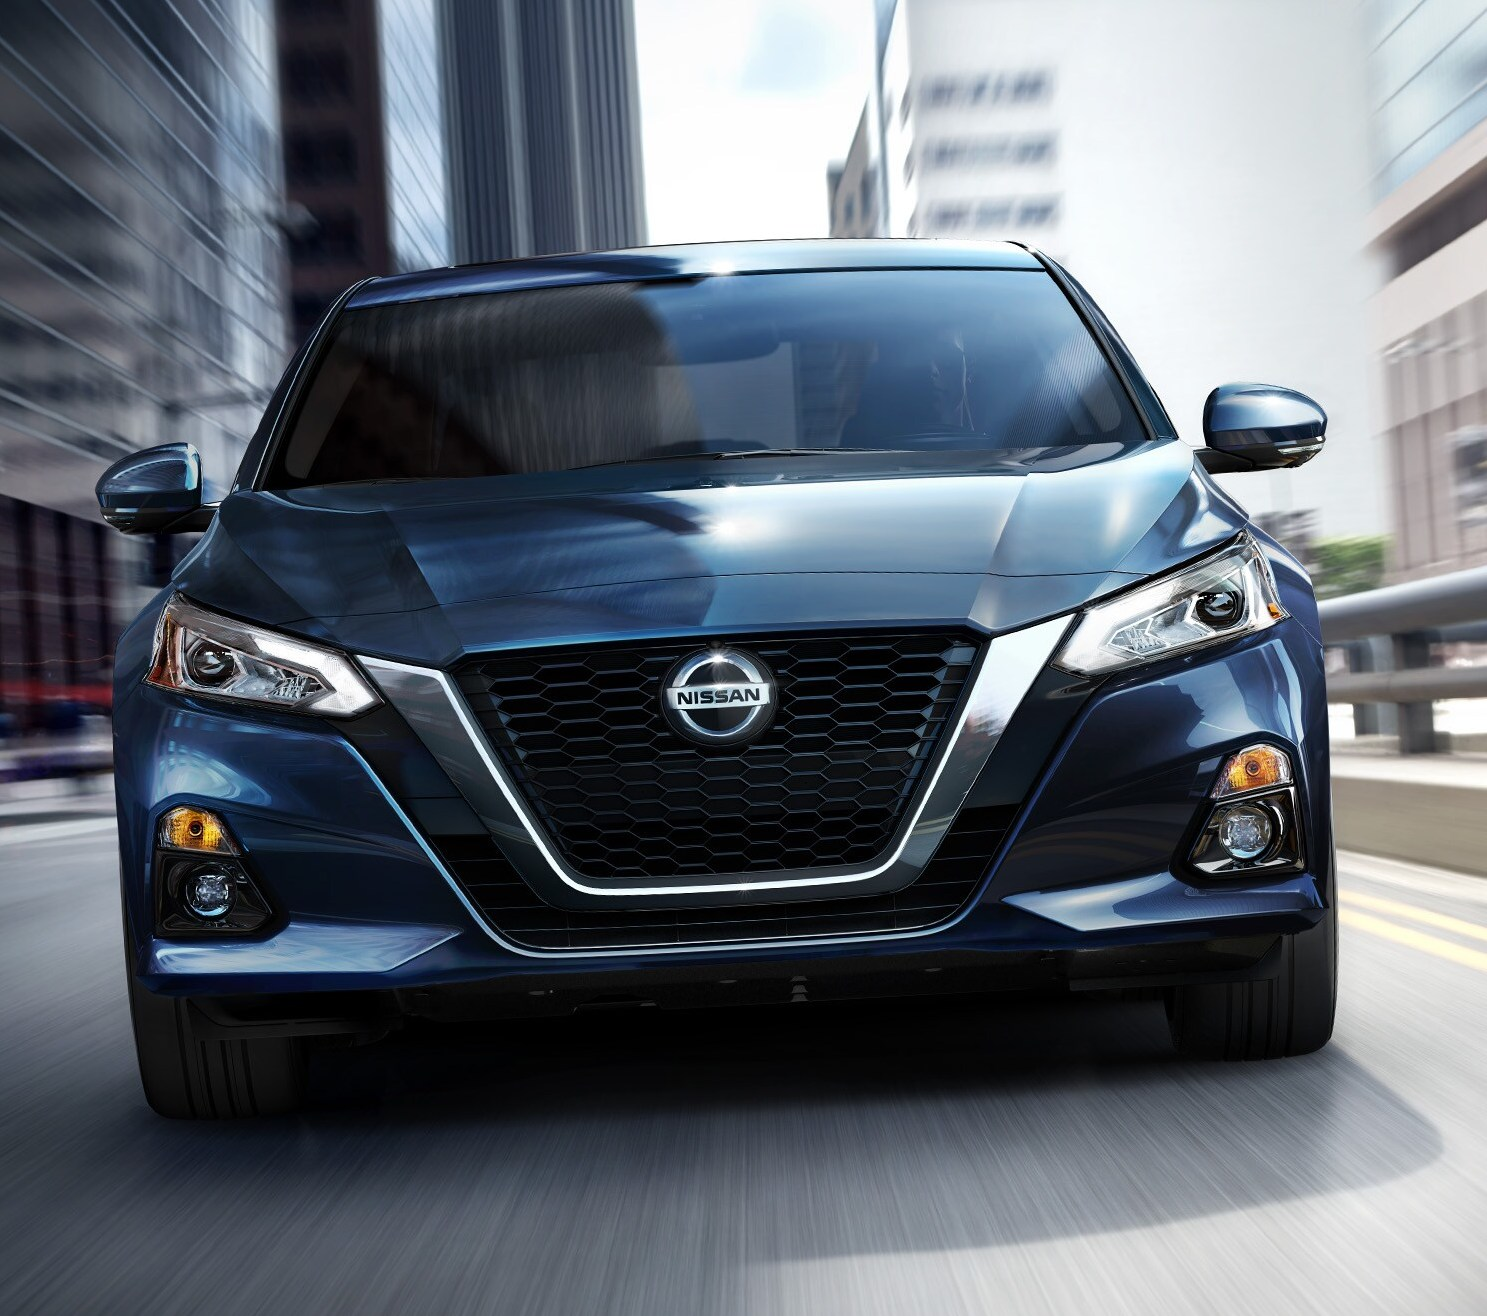 Nissan Extended Warranty Available in Marlborough, MA